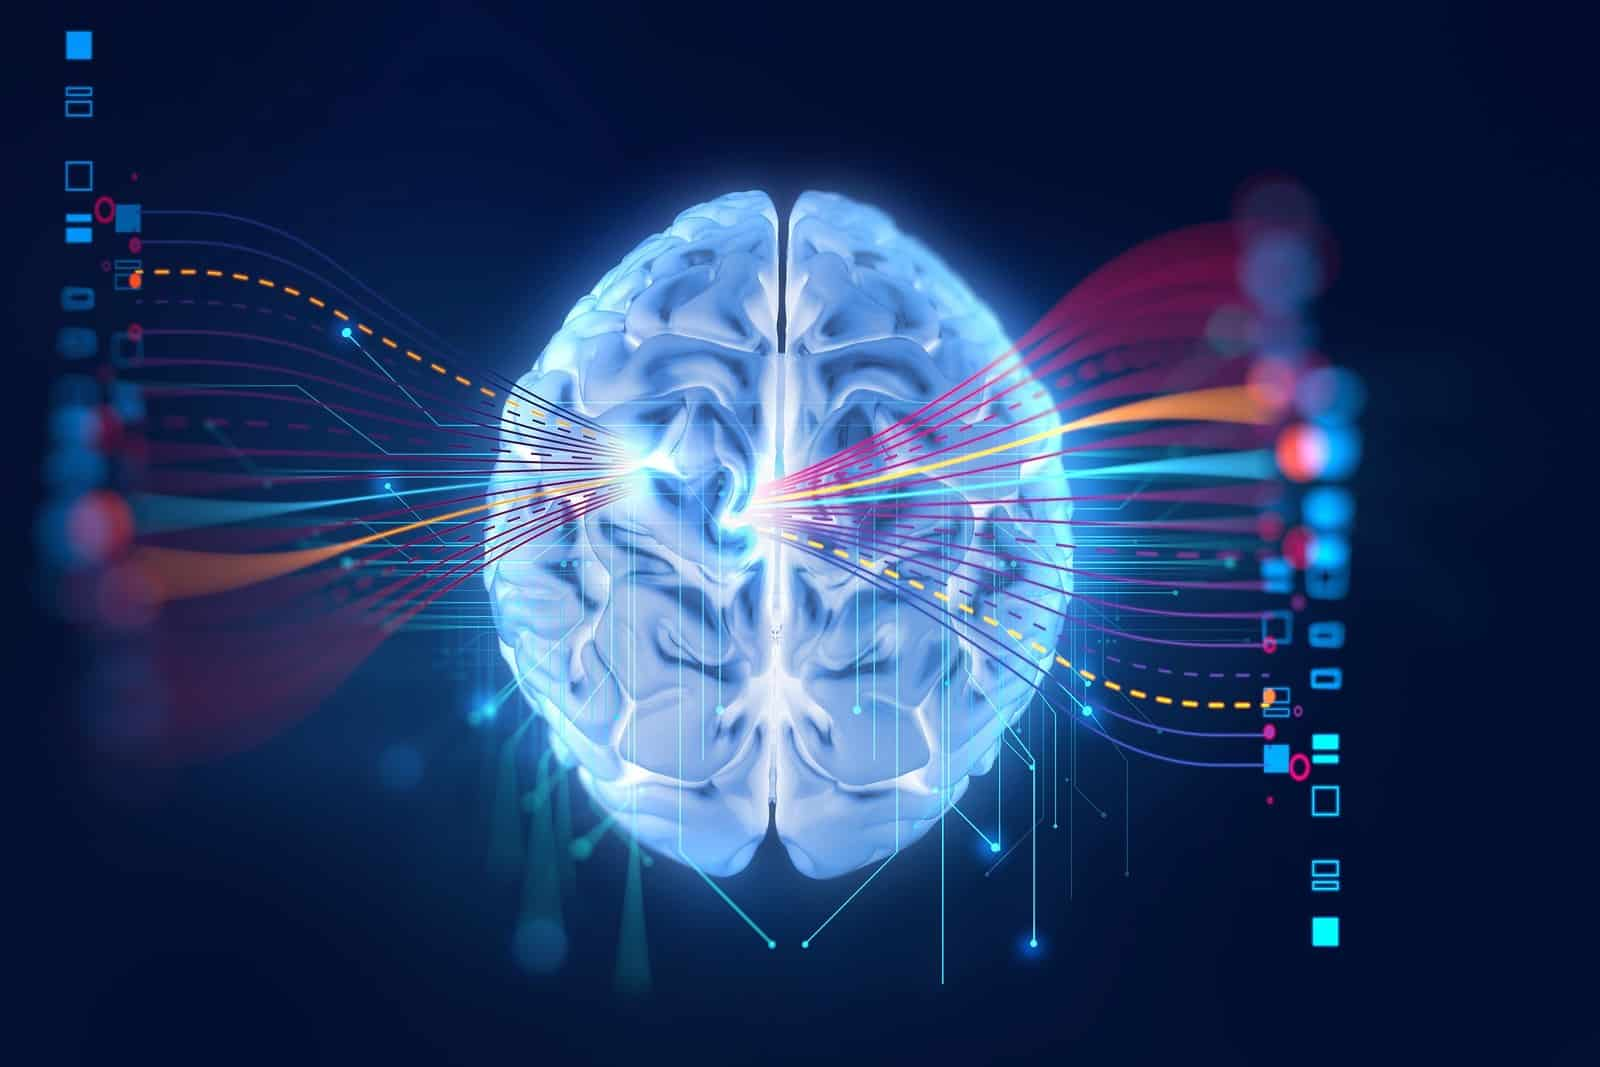 Brain holograms and liberator - release past shock & trauma.